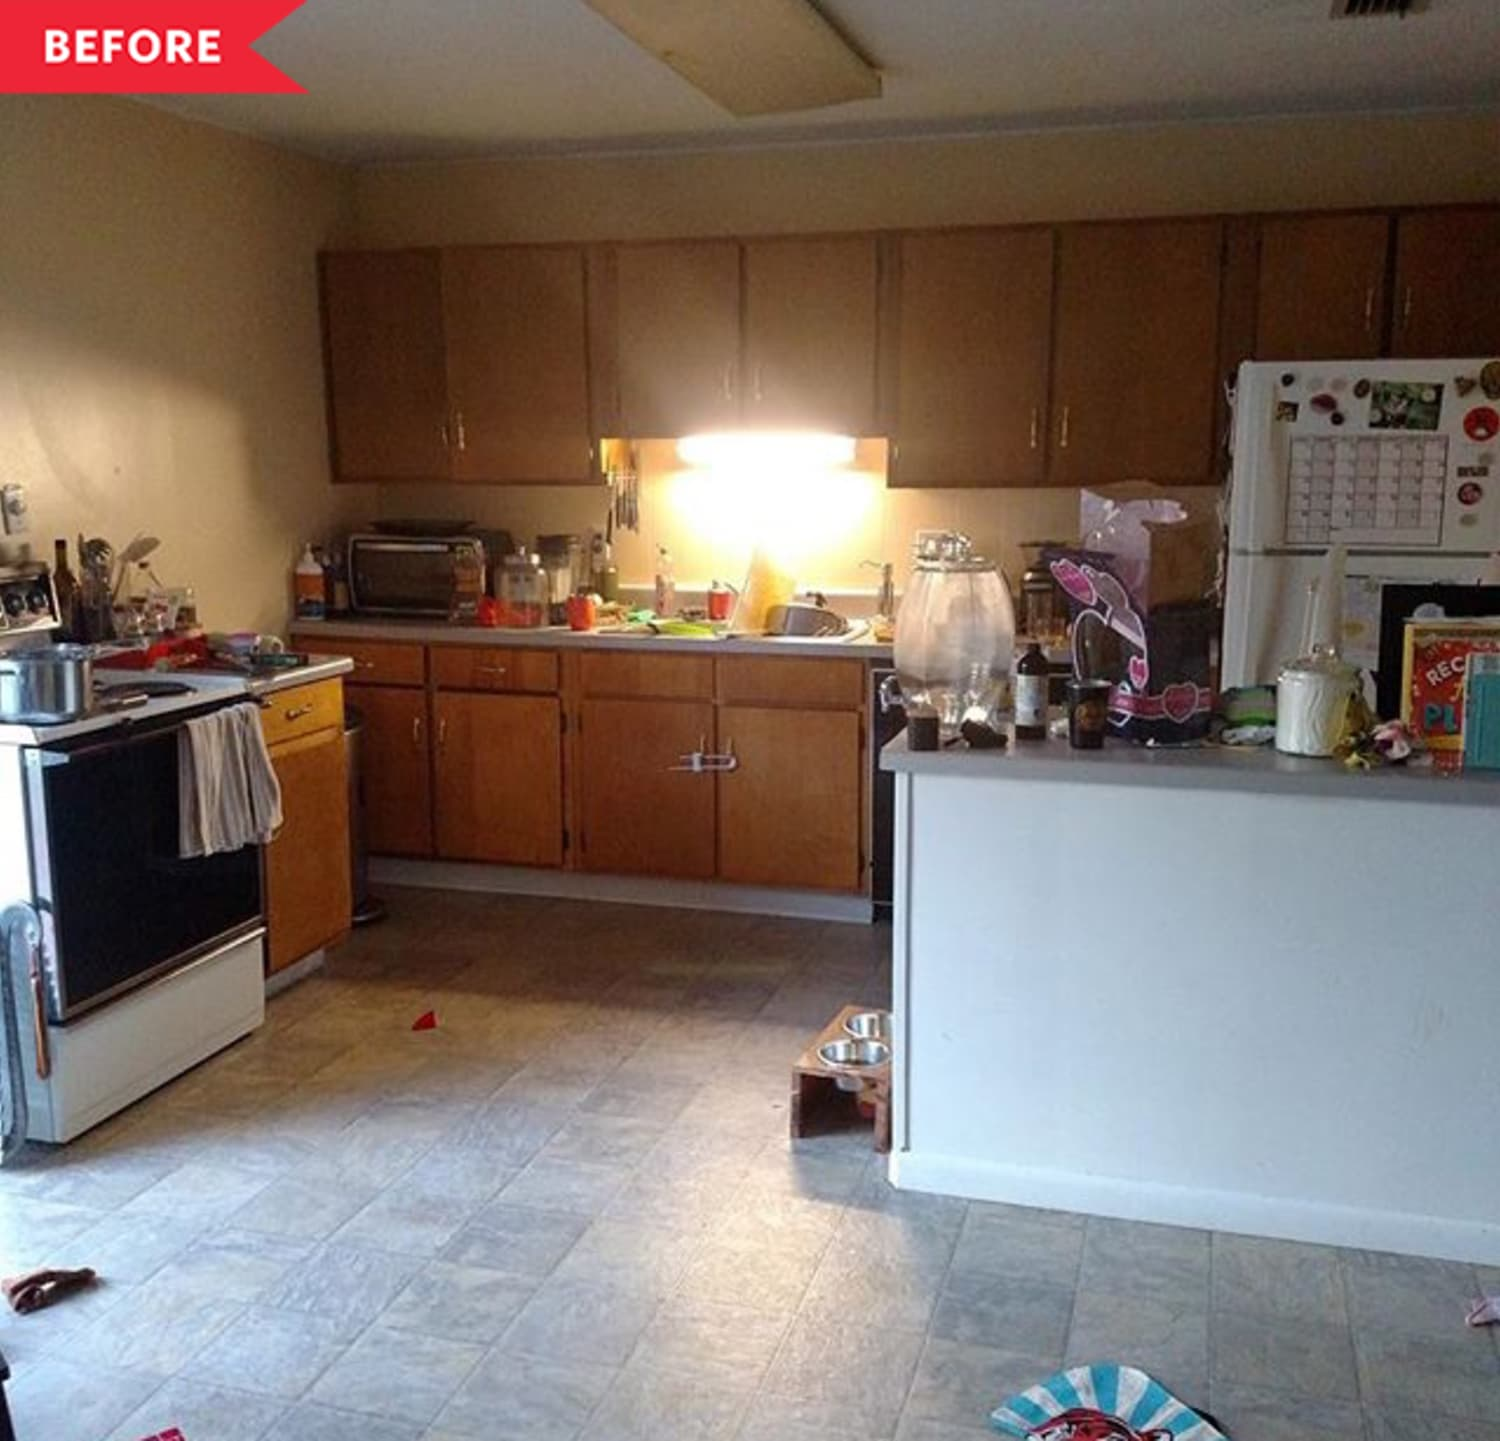 Before & After: A $1000 Rental Kitchen Redo with a Surprising DIY Island